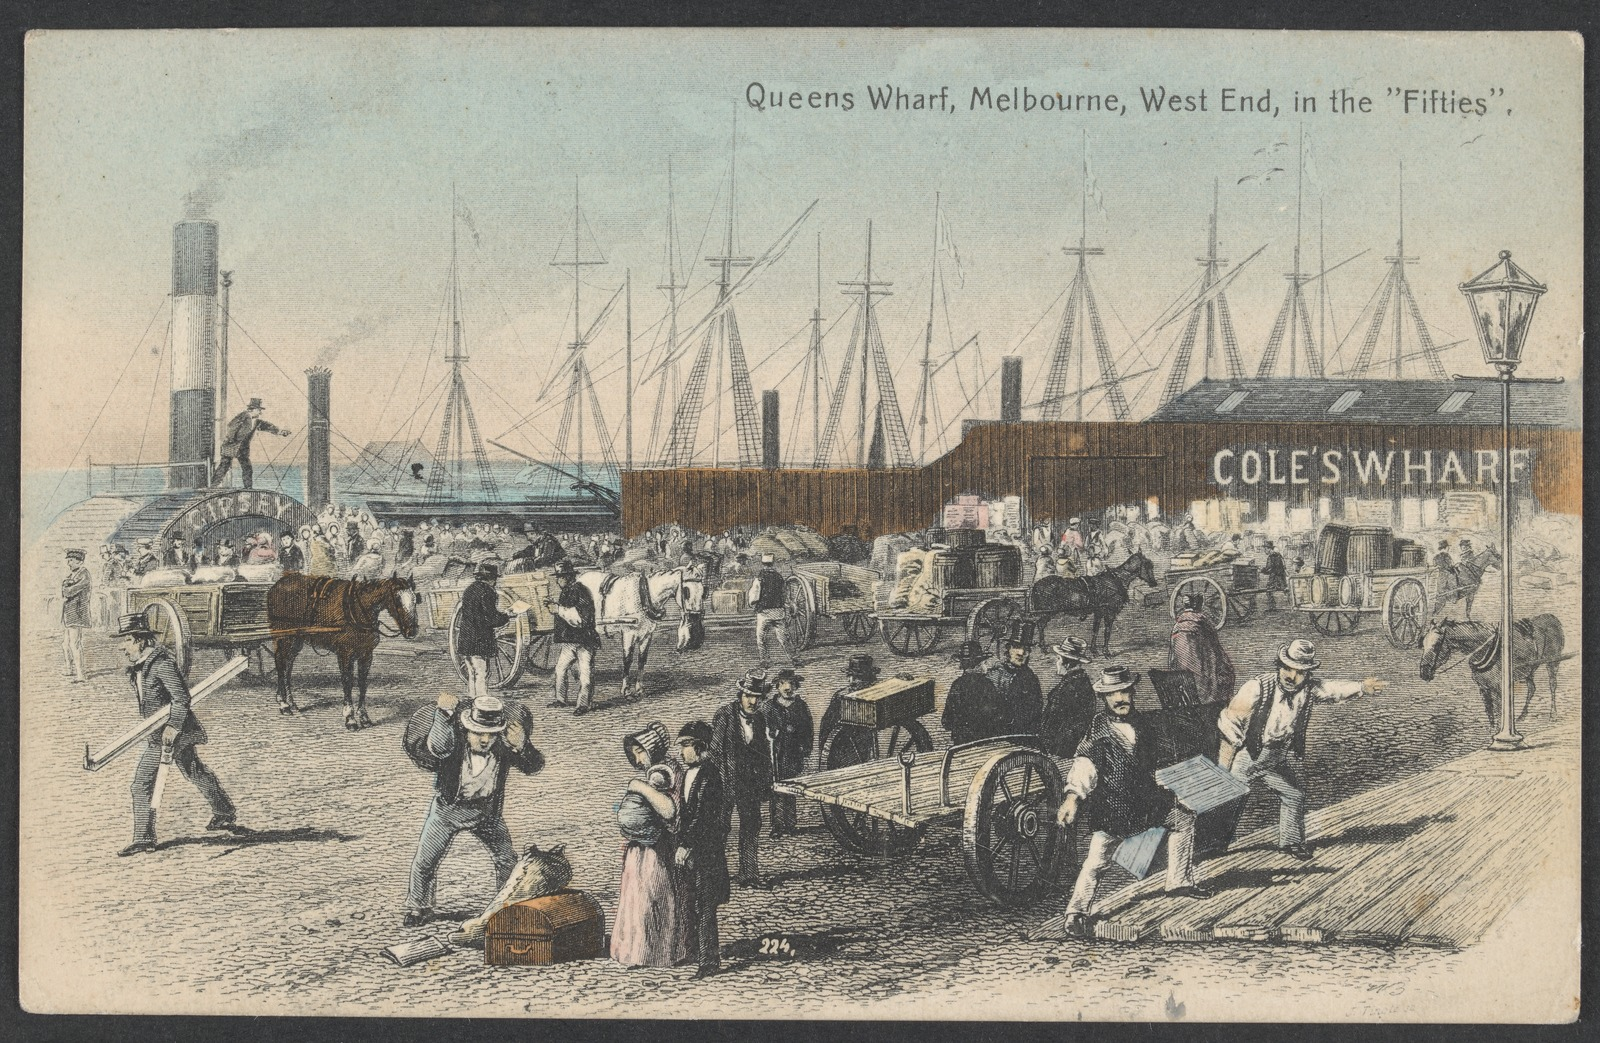 Watercolour painting depicting Queens wharf in the 1850s